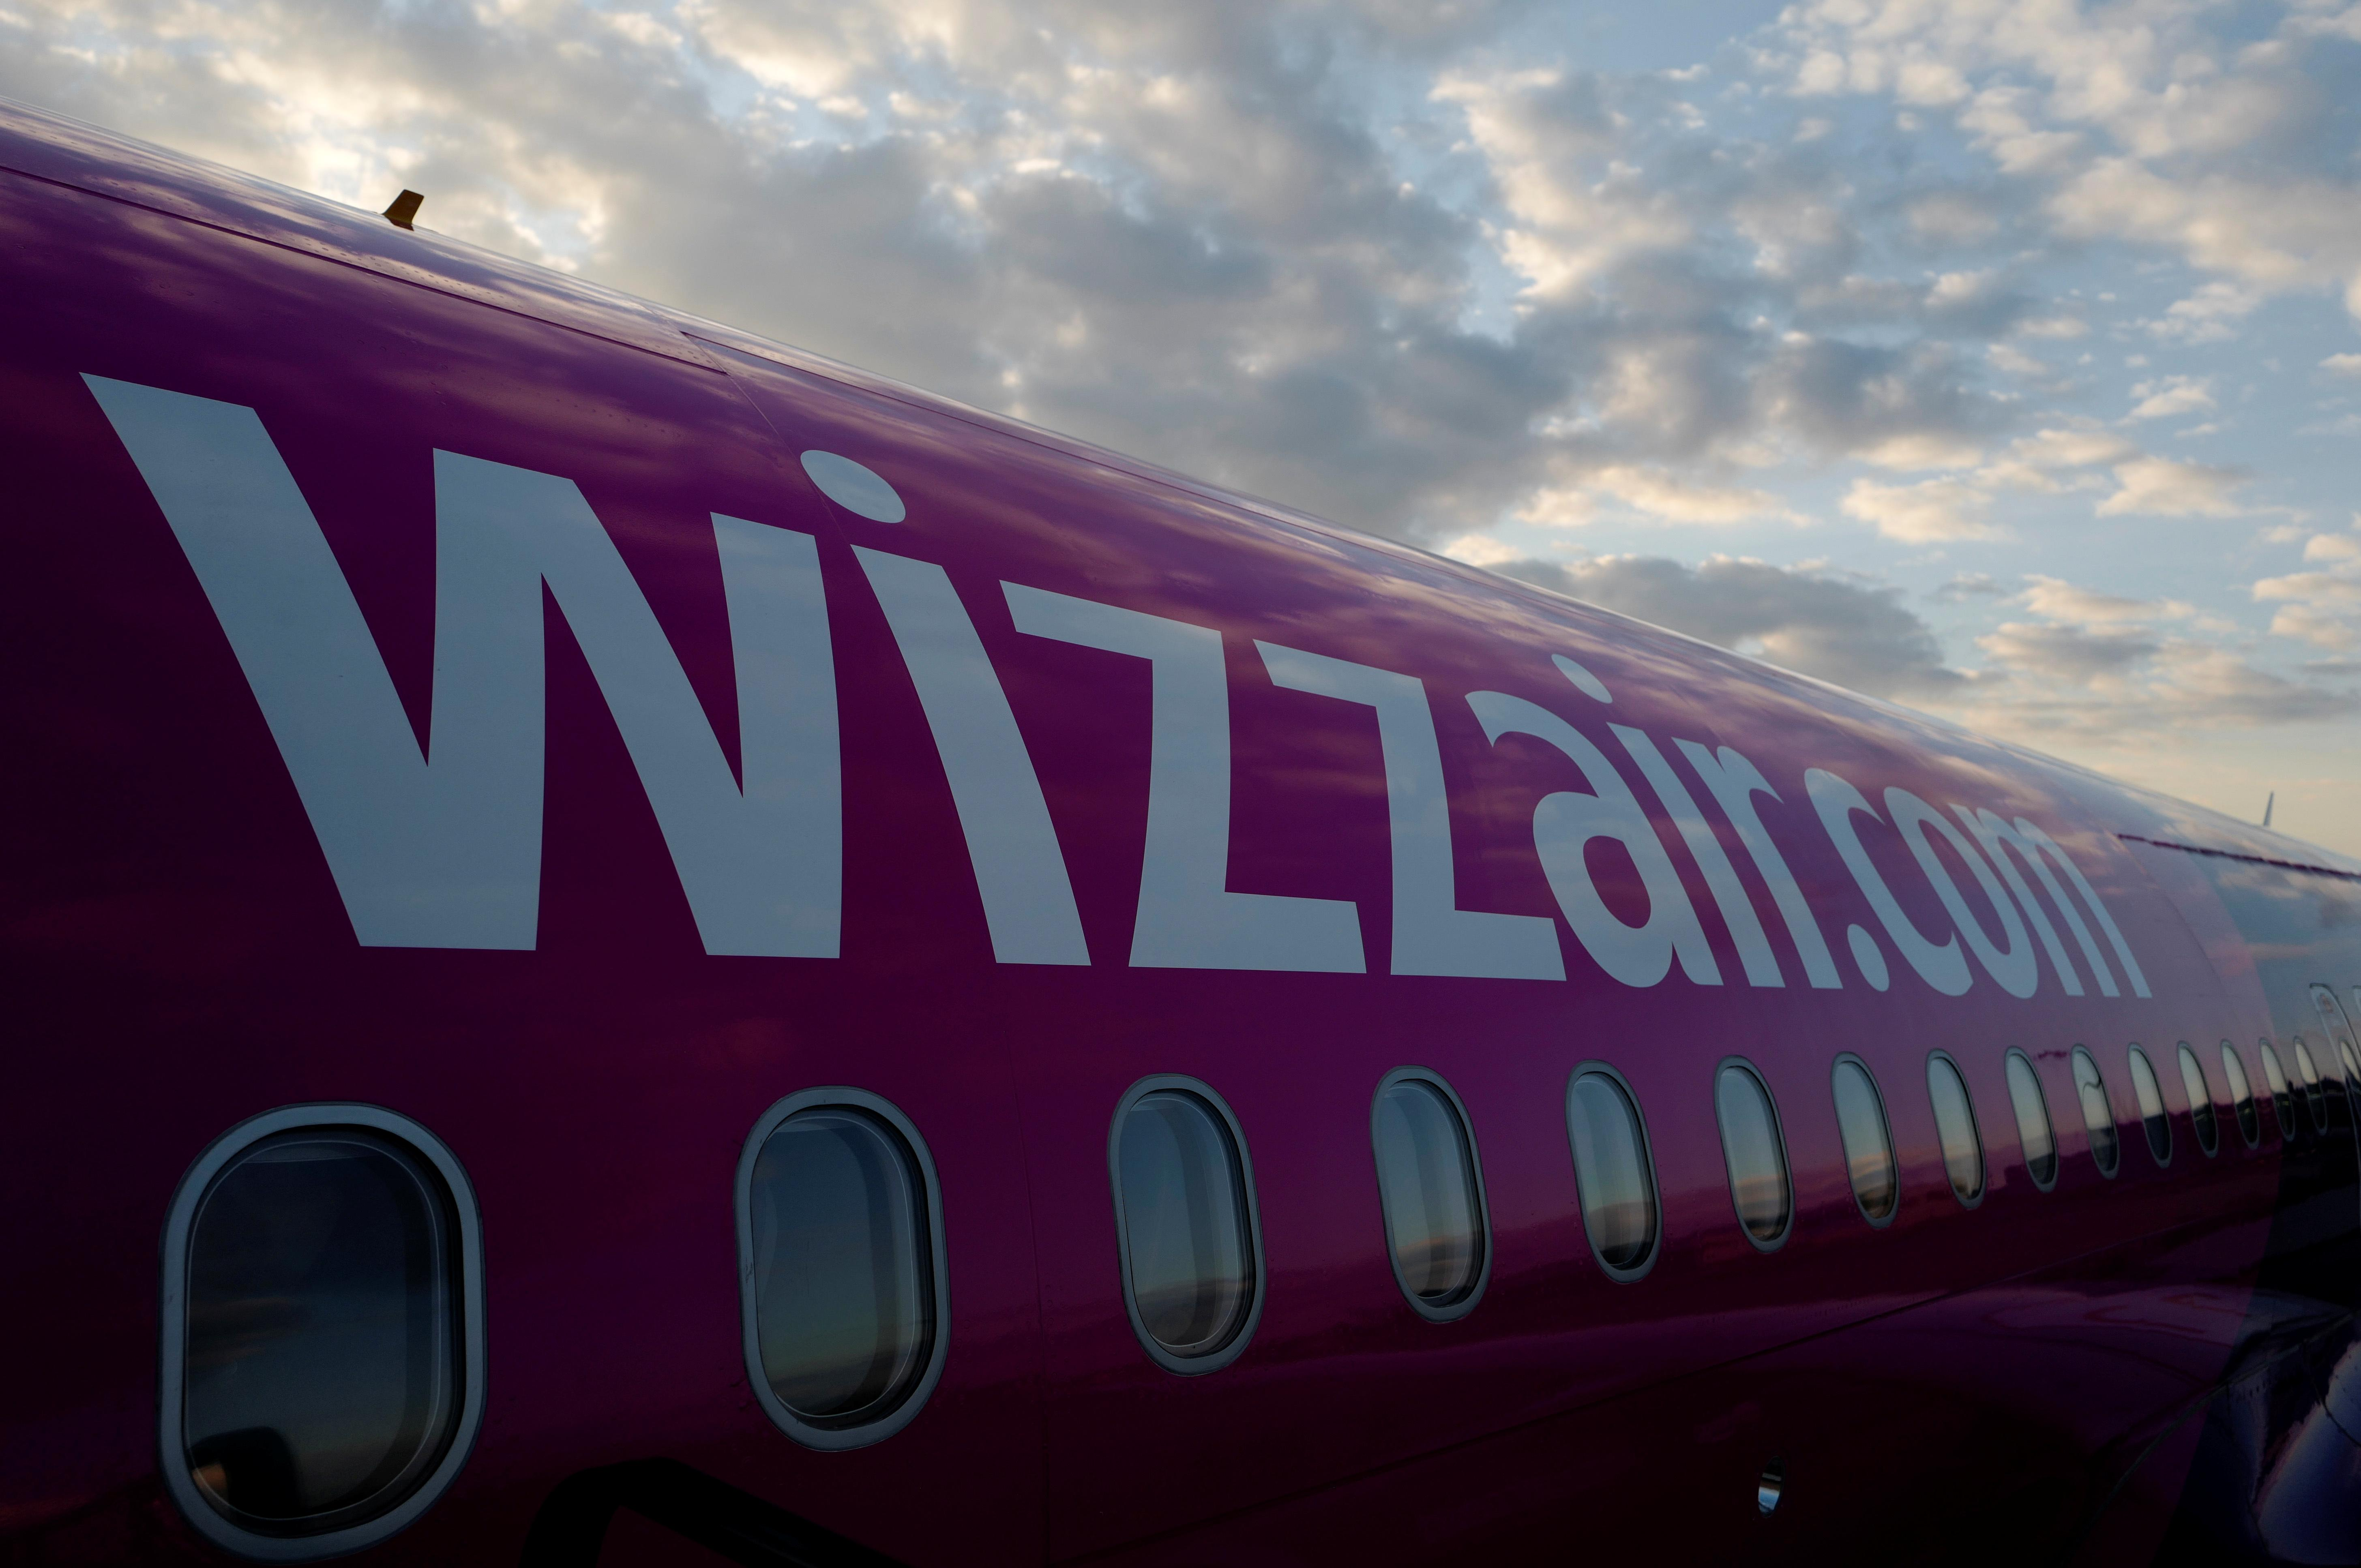 Wizz Air boss looks to Brexit as an opportunity to grow